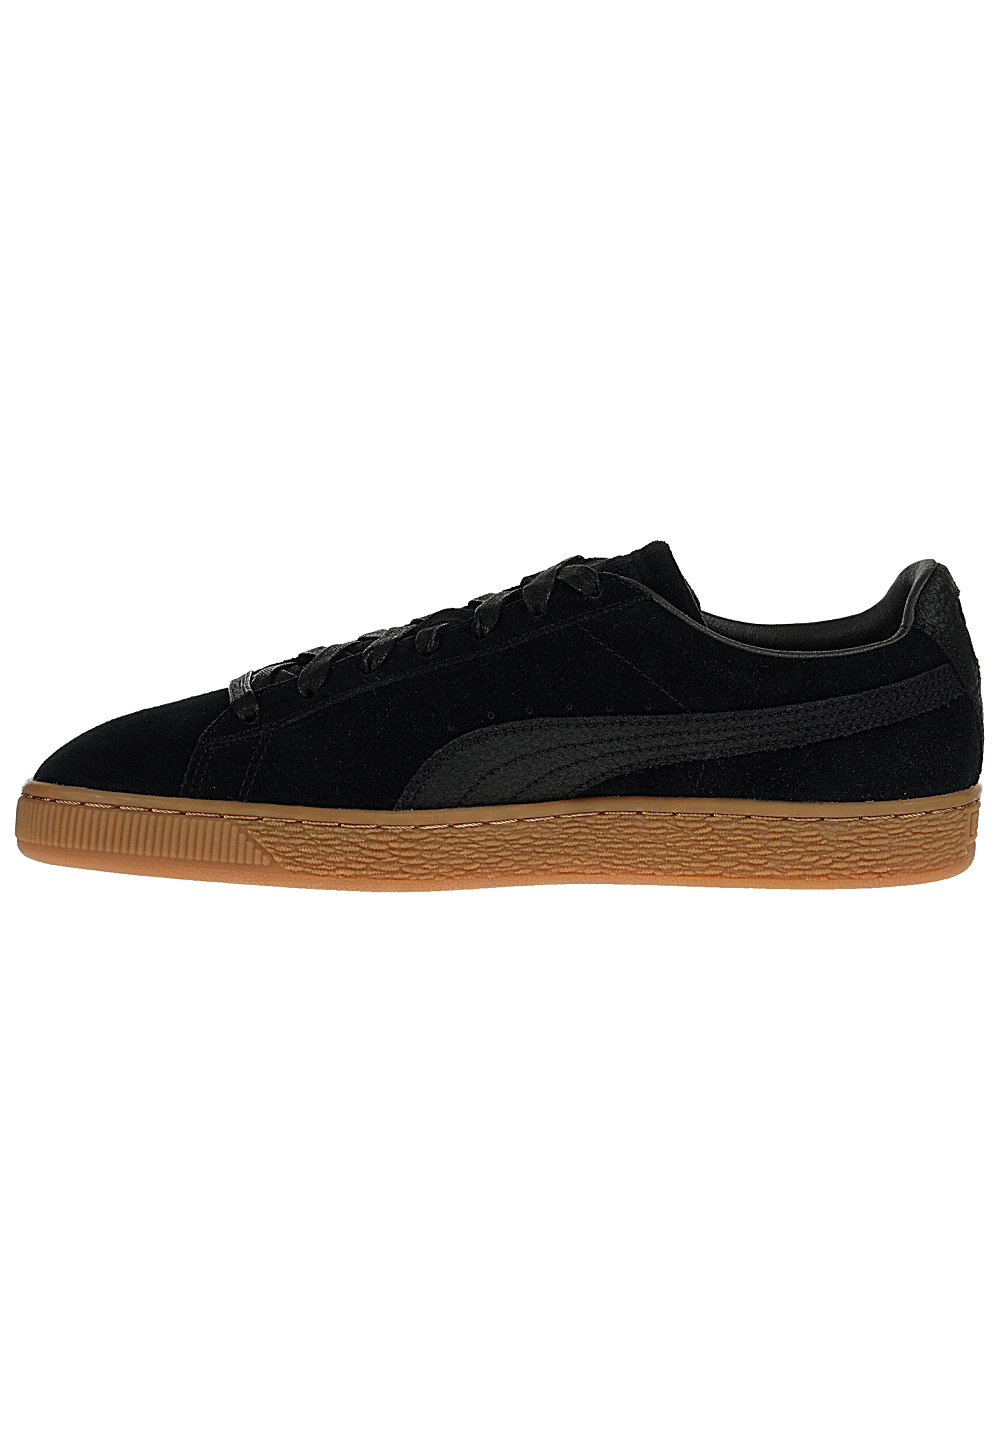 Next. -20%. This product is currently out of stock. Puma. Suede Classic  Natural Warmth ... 525e8fccd